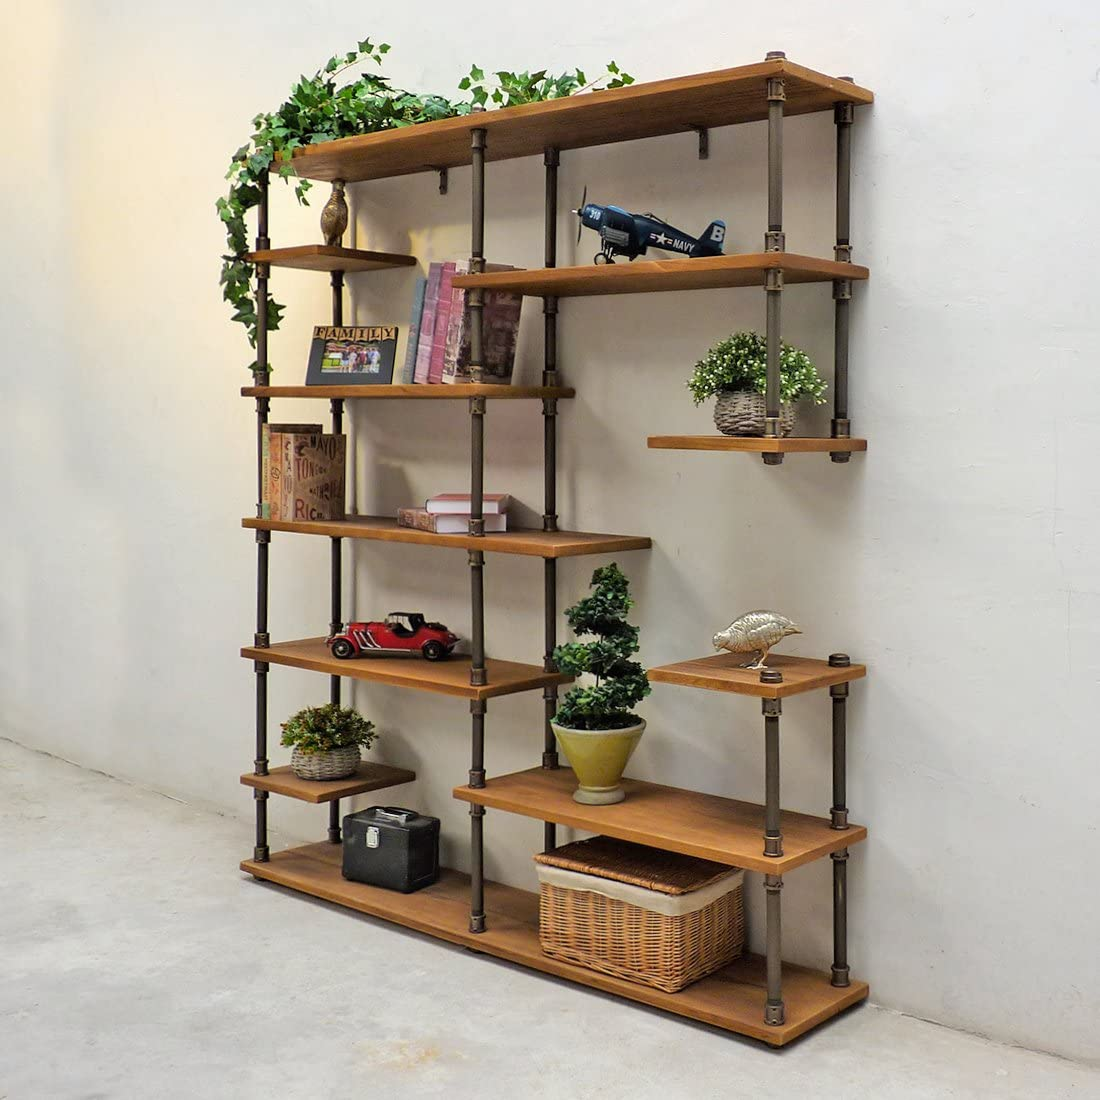 Furniture Pipeline Nashville Industrial Mid-Century Etagere Bookcase